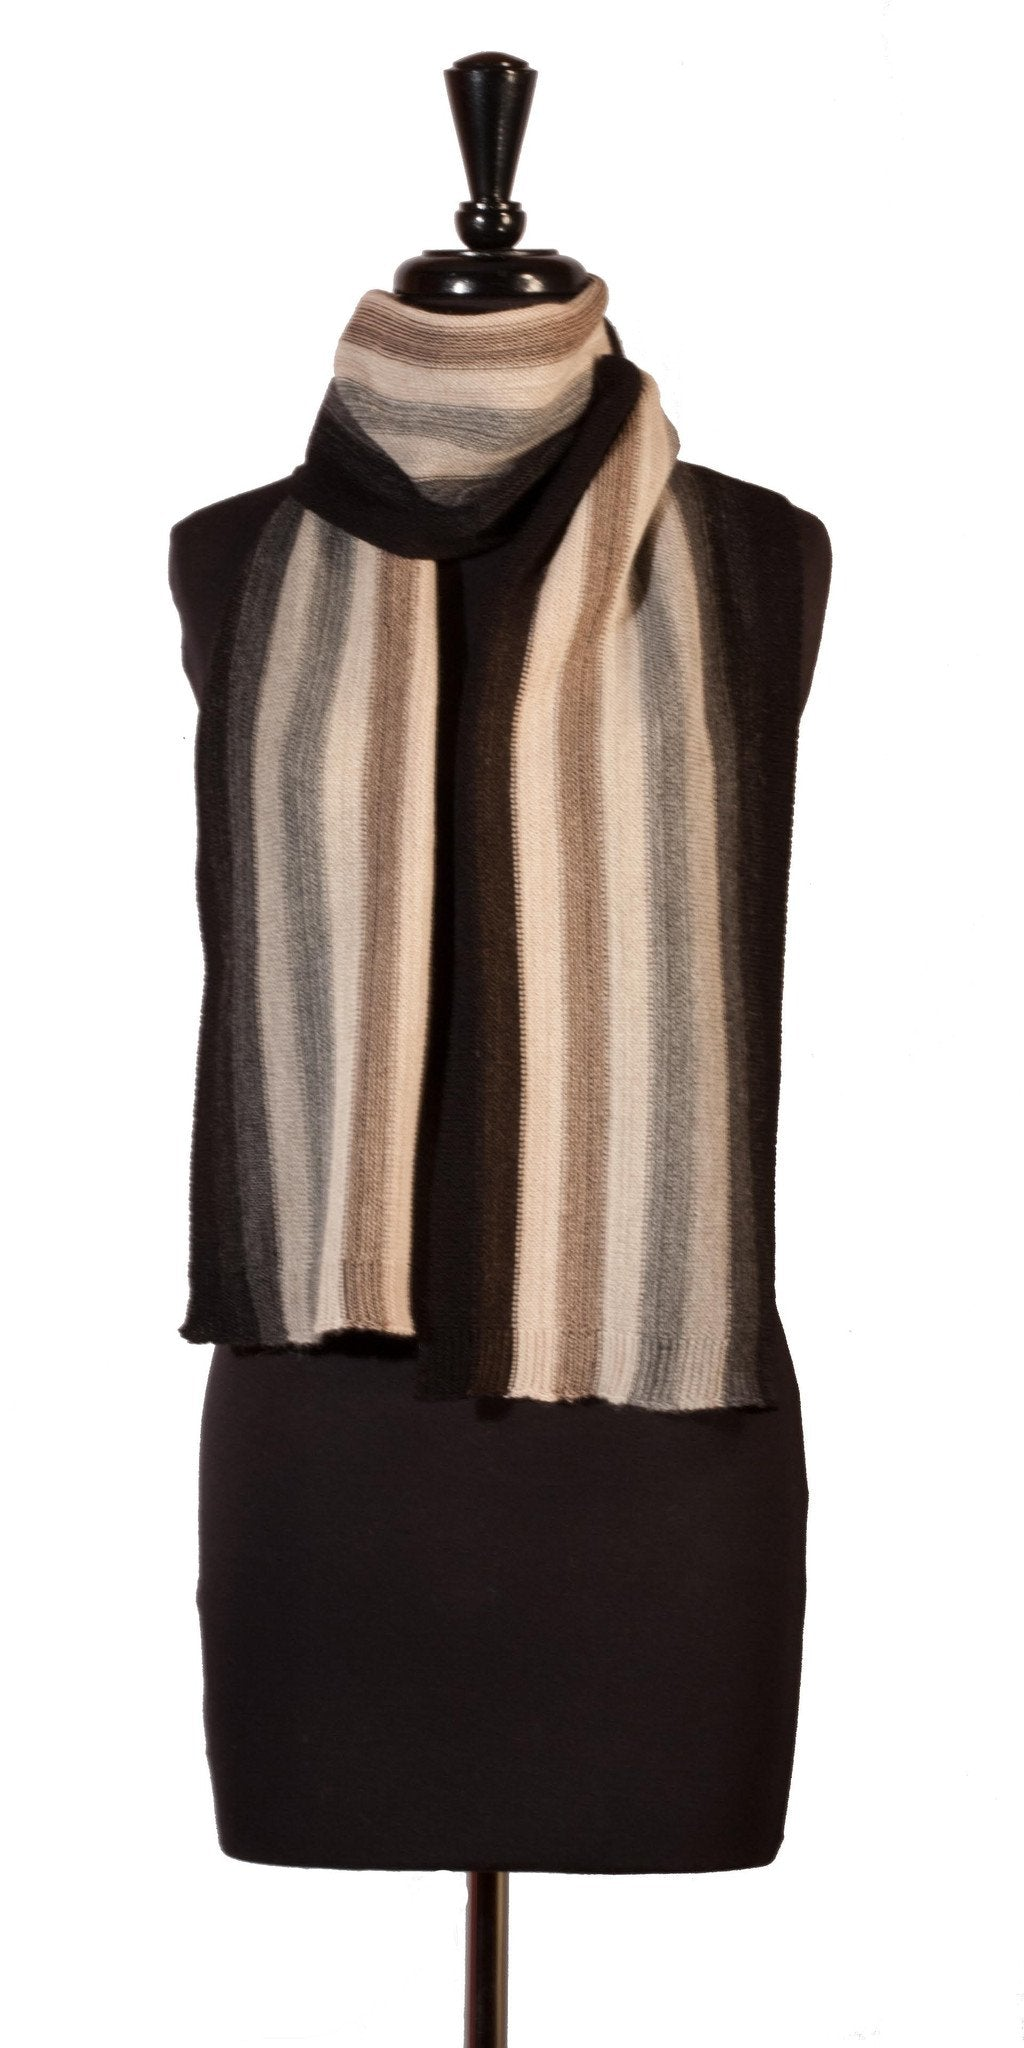 Baby Alpaca Scarf for Men - Charcoal, Grays & Cream - Qinti - The Peruvian Shop